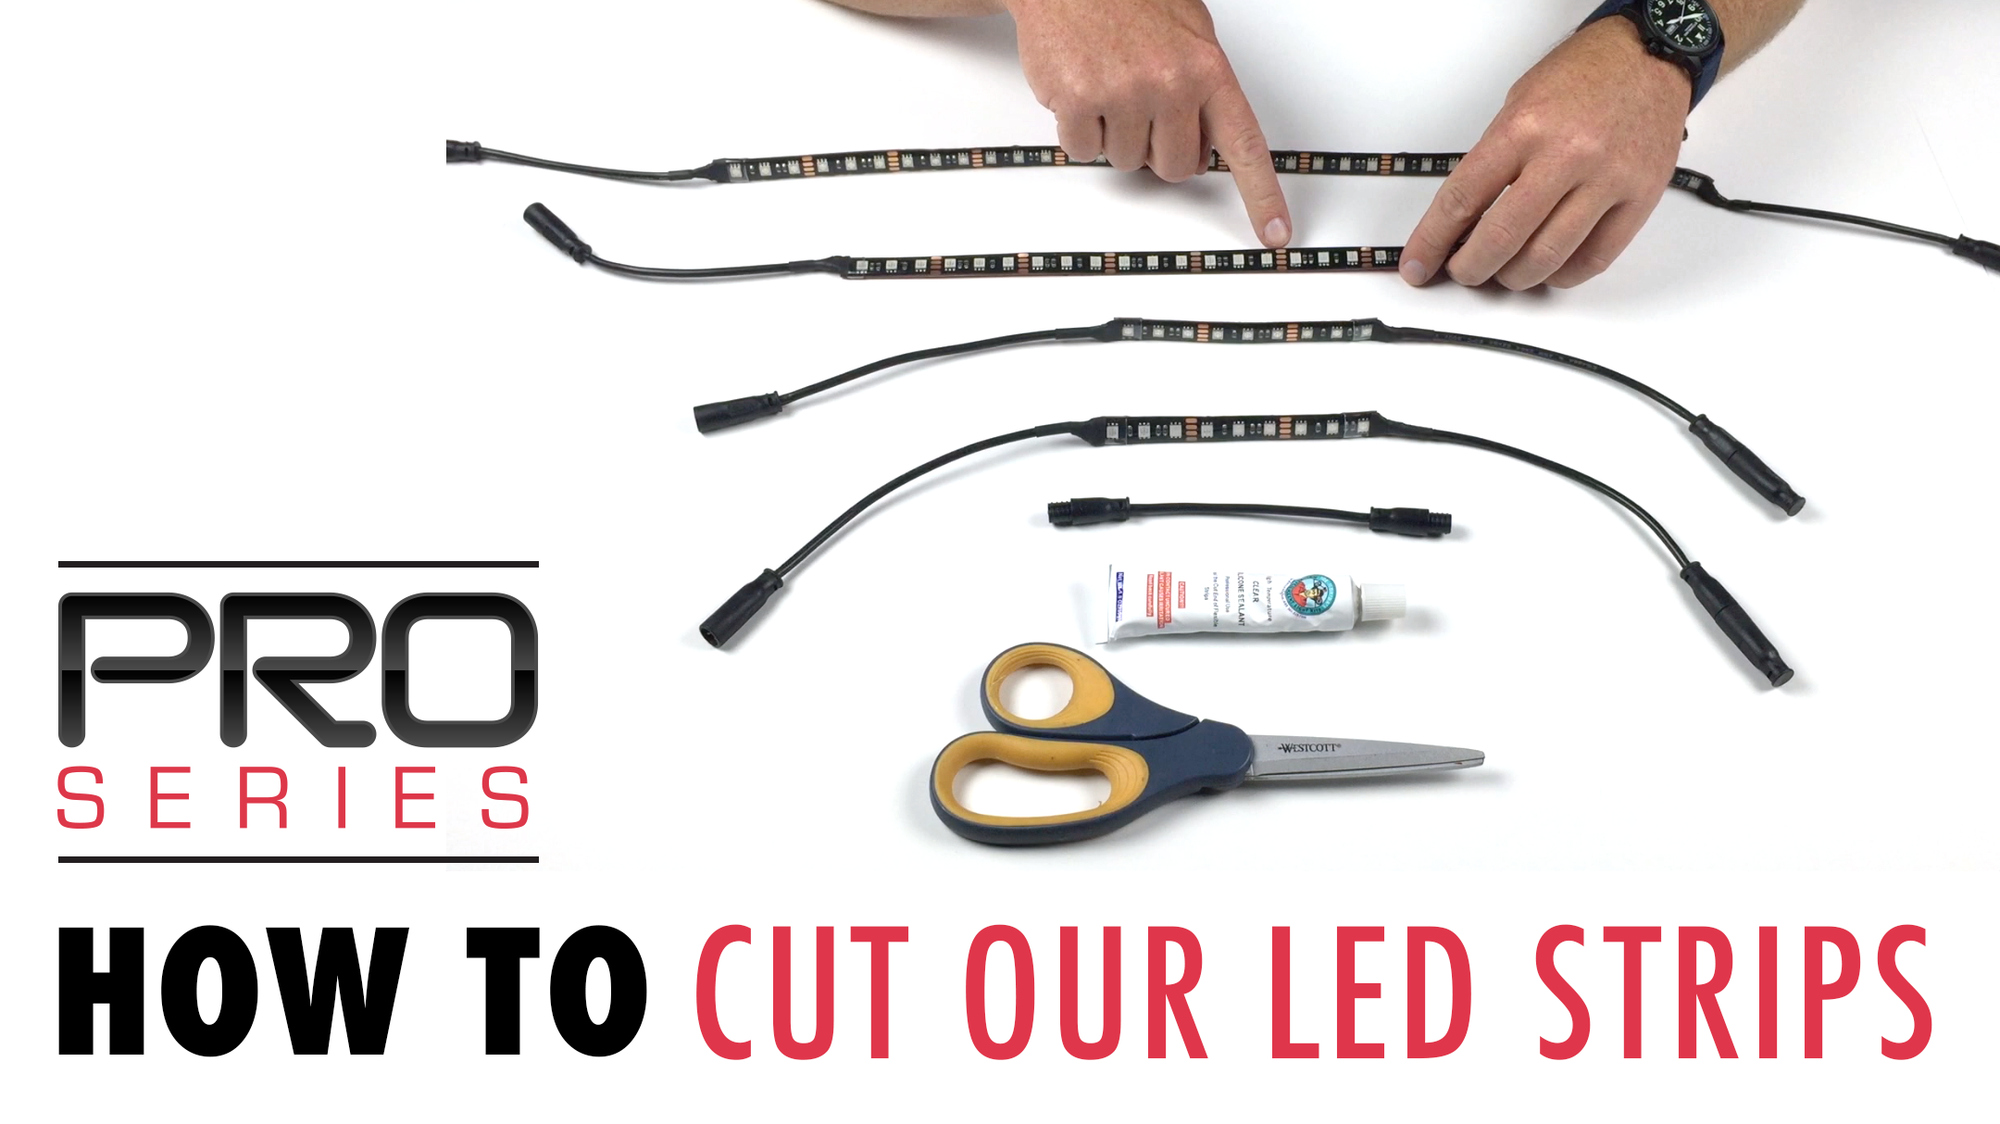 WATCH: How To Cut Our LED Strips